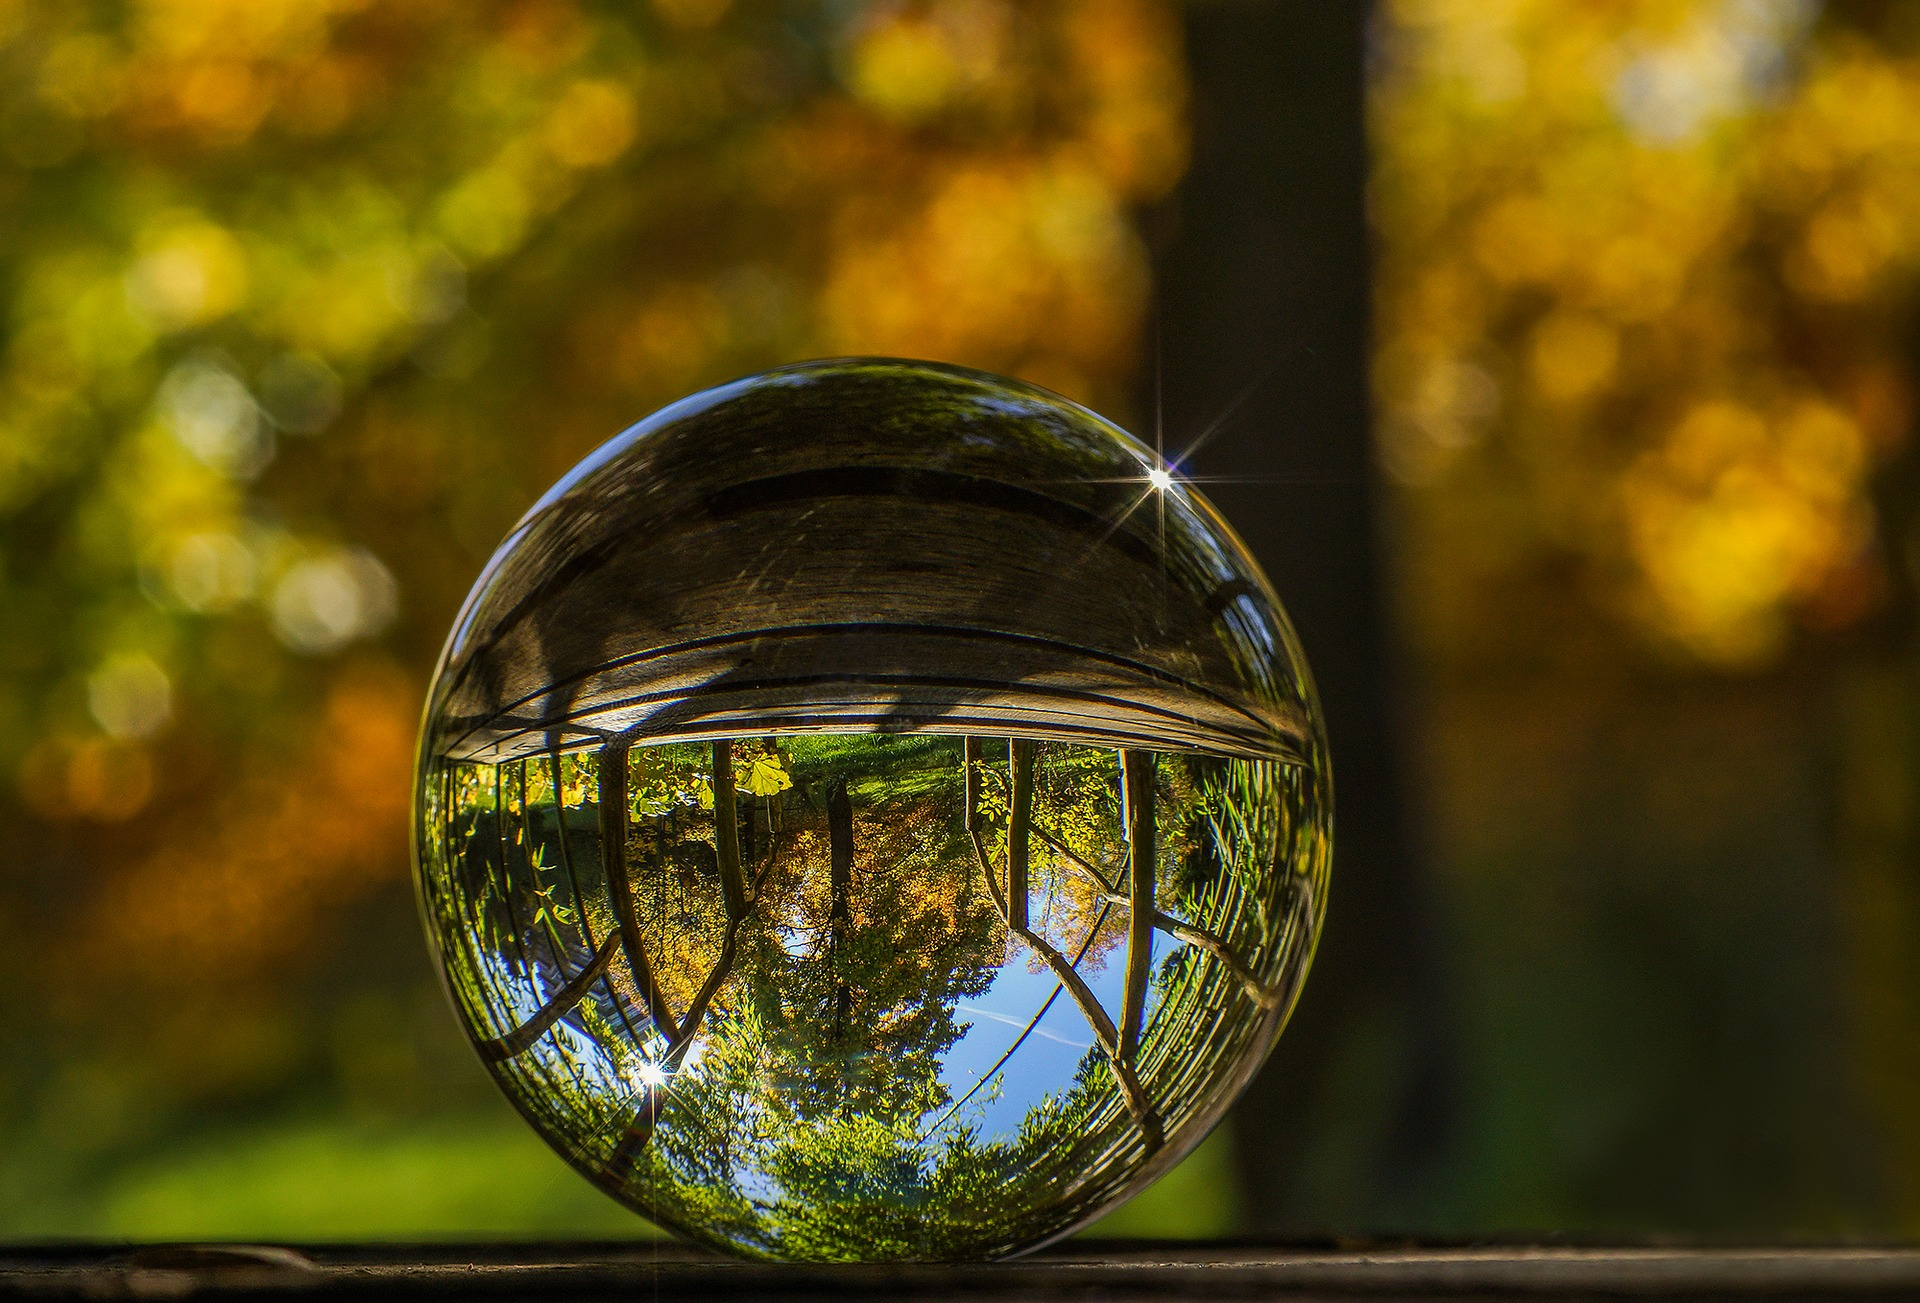 Glass Ball Reflection